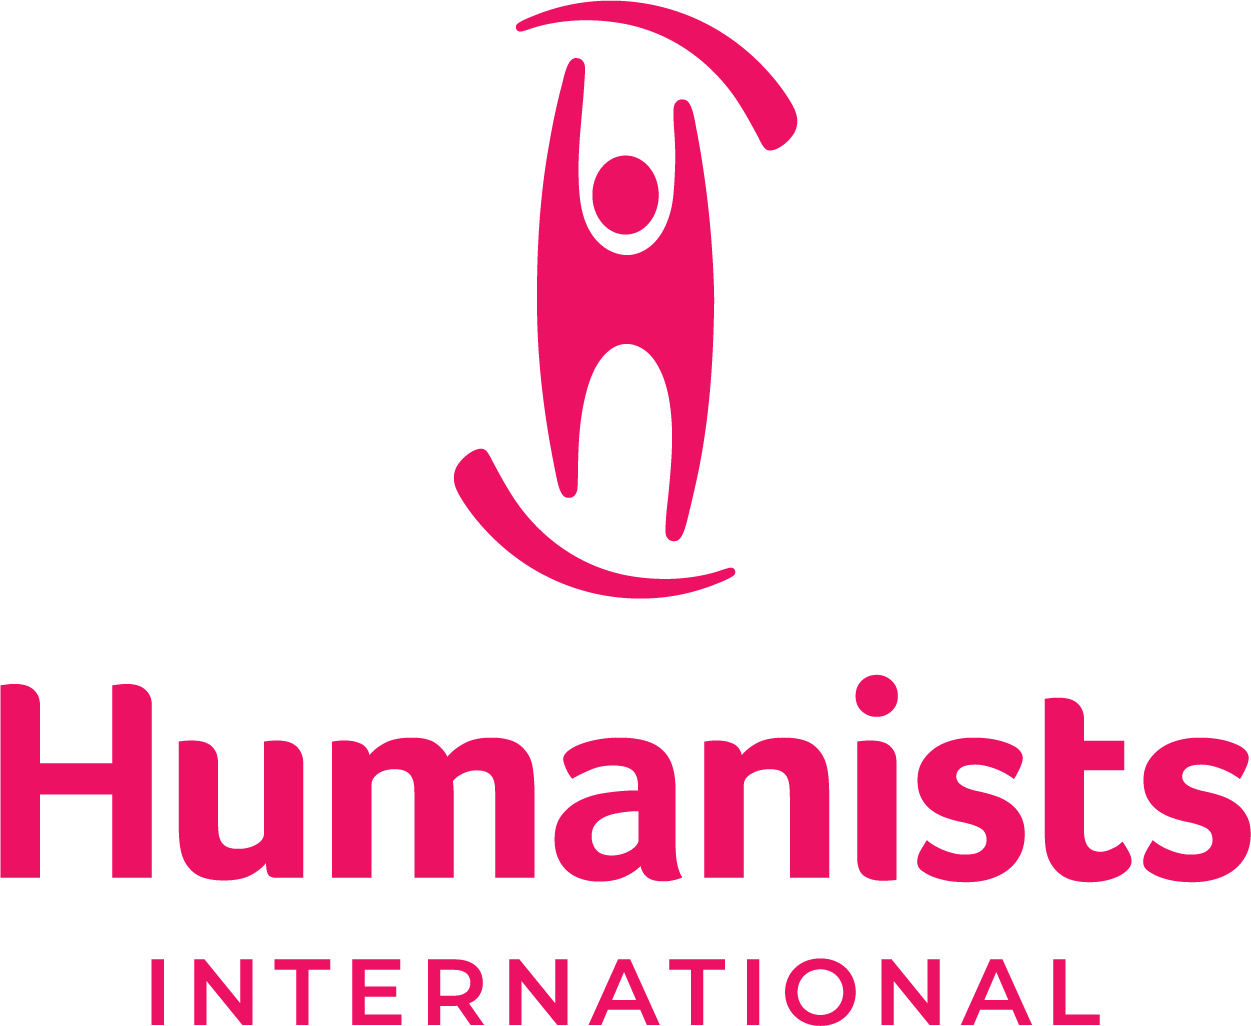 Humanists International